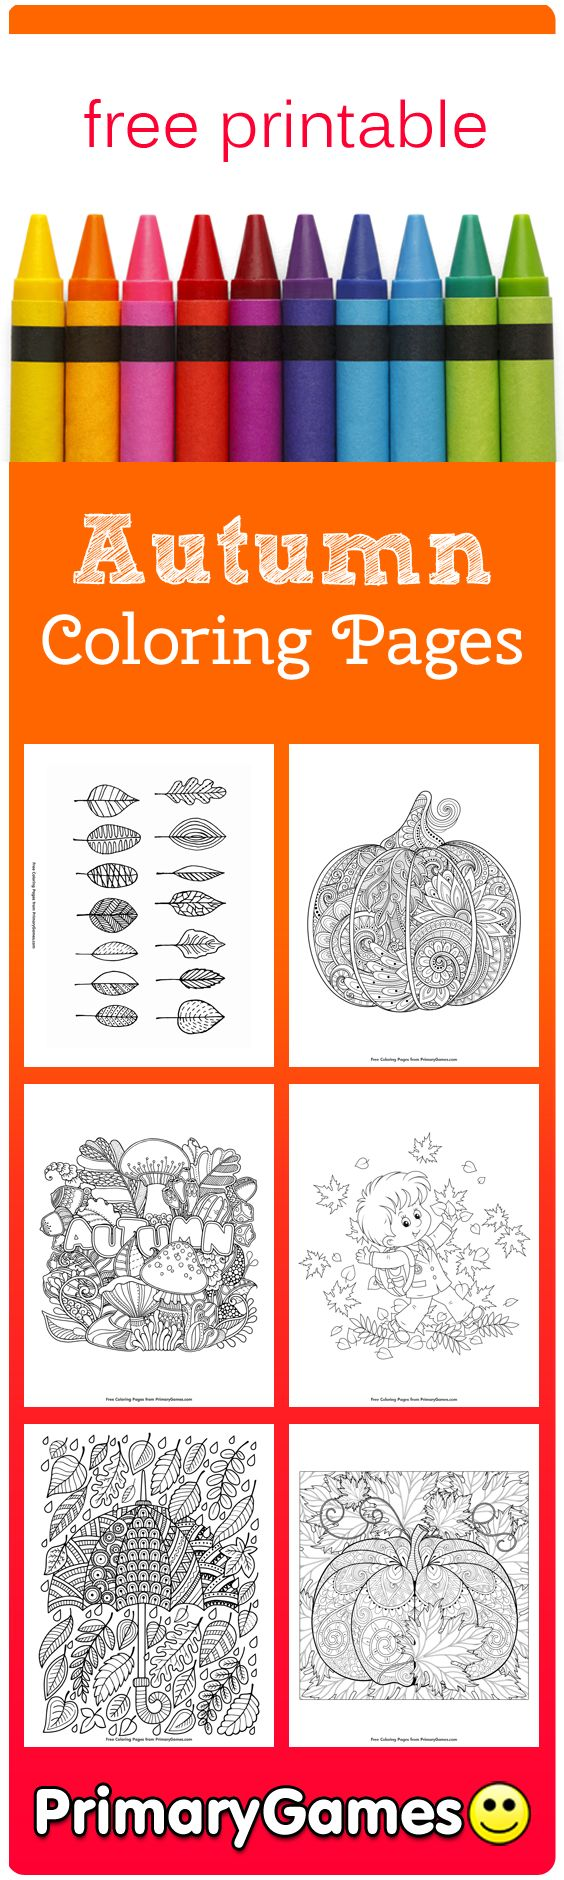 Coloring book for notability - Fall Coloring Pages